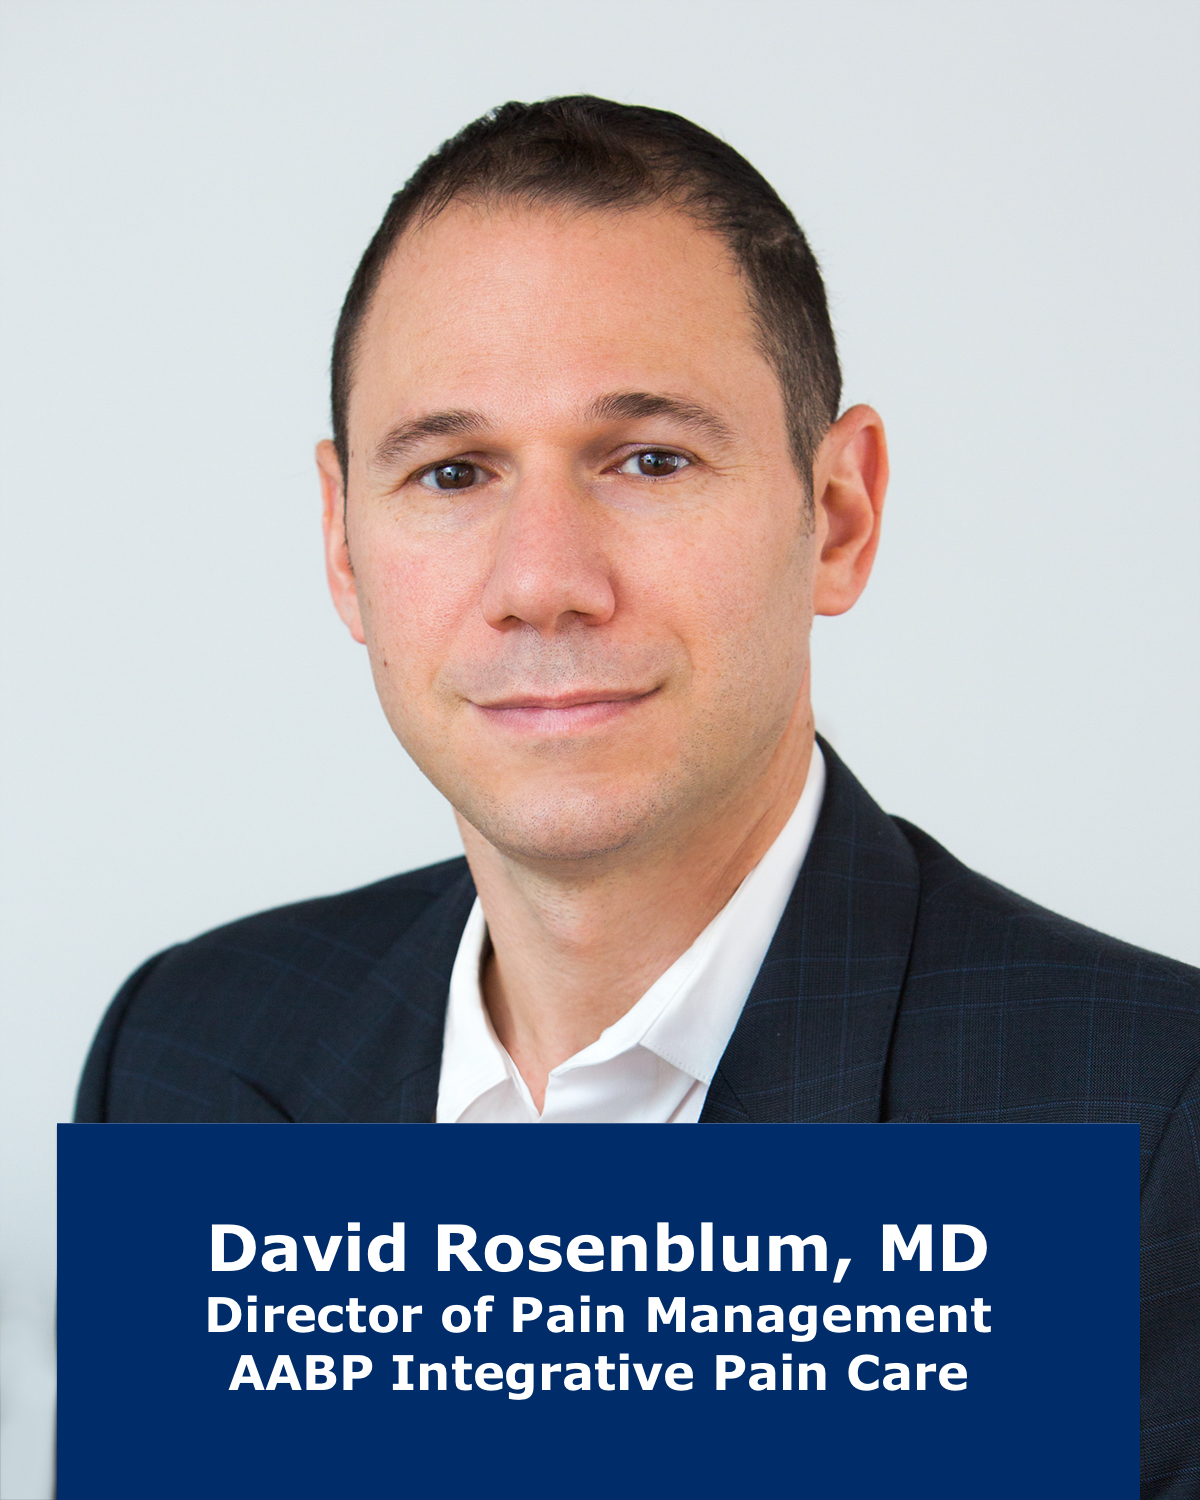 David Rosenblum, MD- Director of Pain Management, AABP Integrative Pain Care